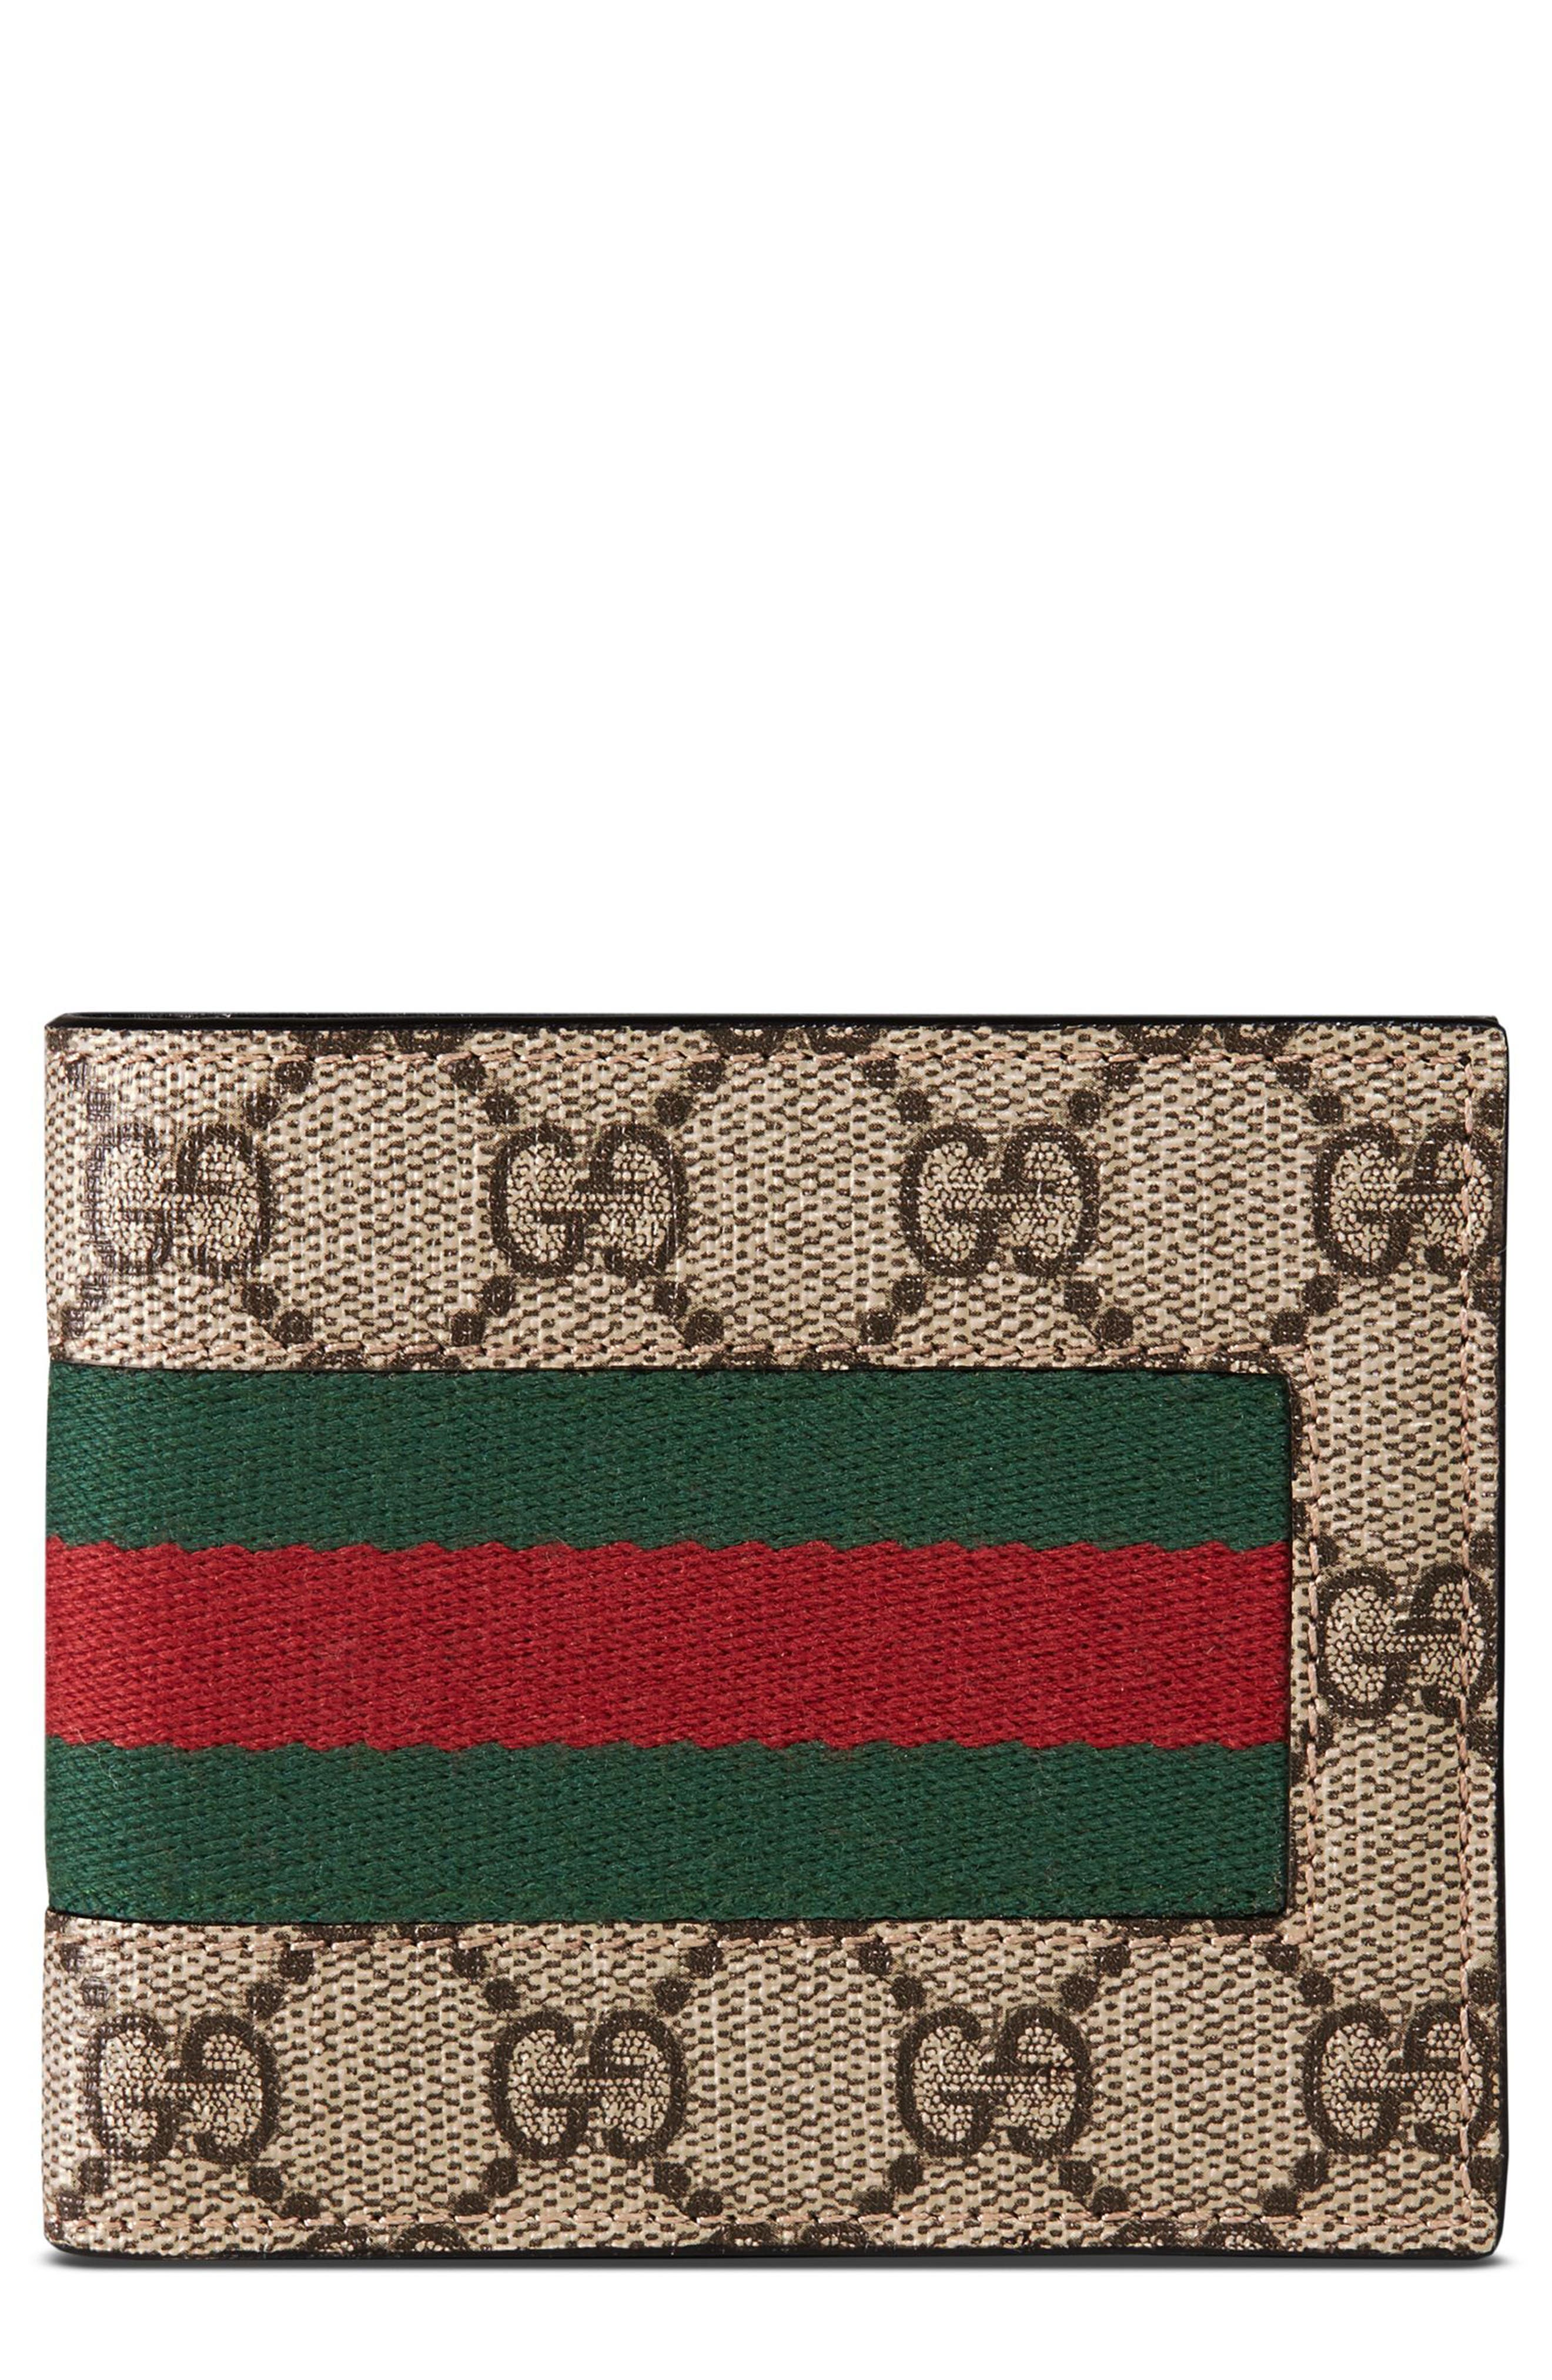 ef25b3fc2526 Men's Gucci Wallets | Nordstrom